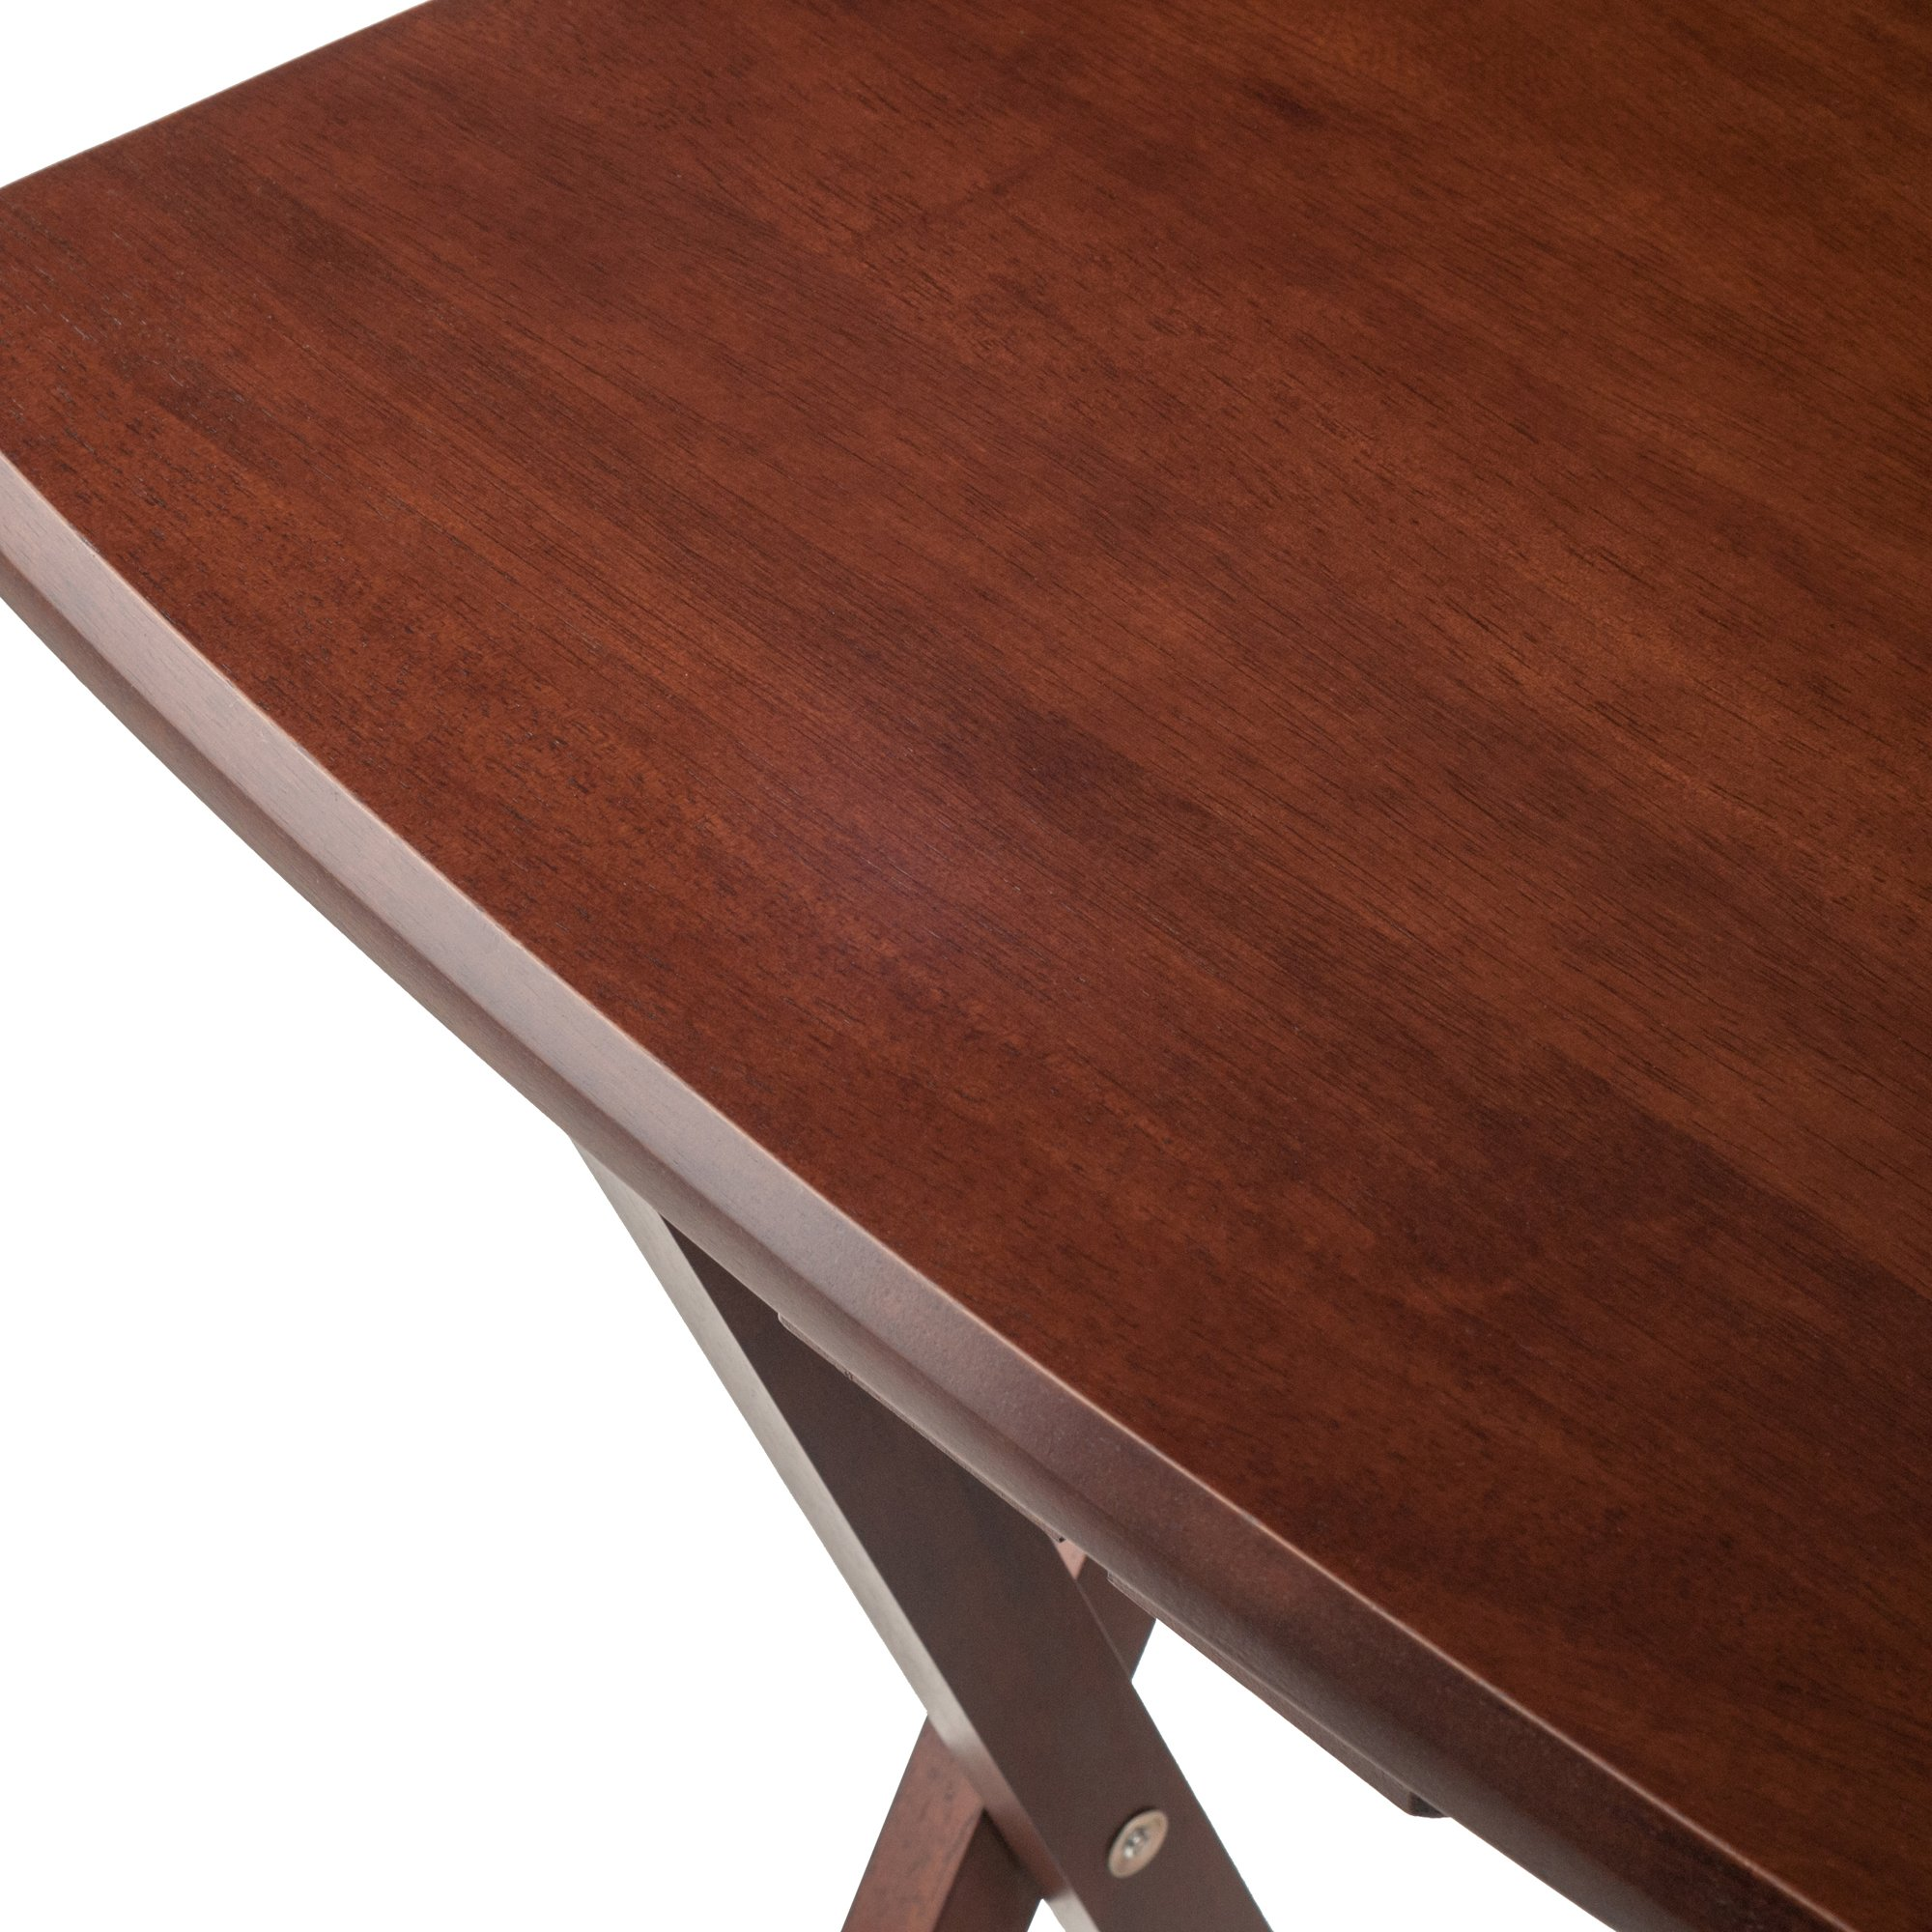 Winsome Oversize Snack Table Set, Walnut by Winsome Wood (Image #6)